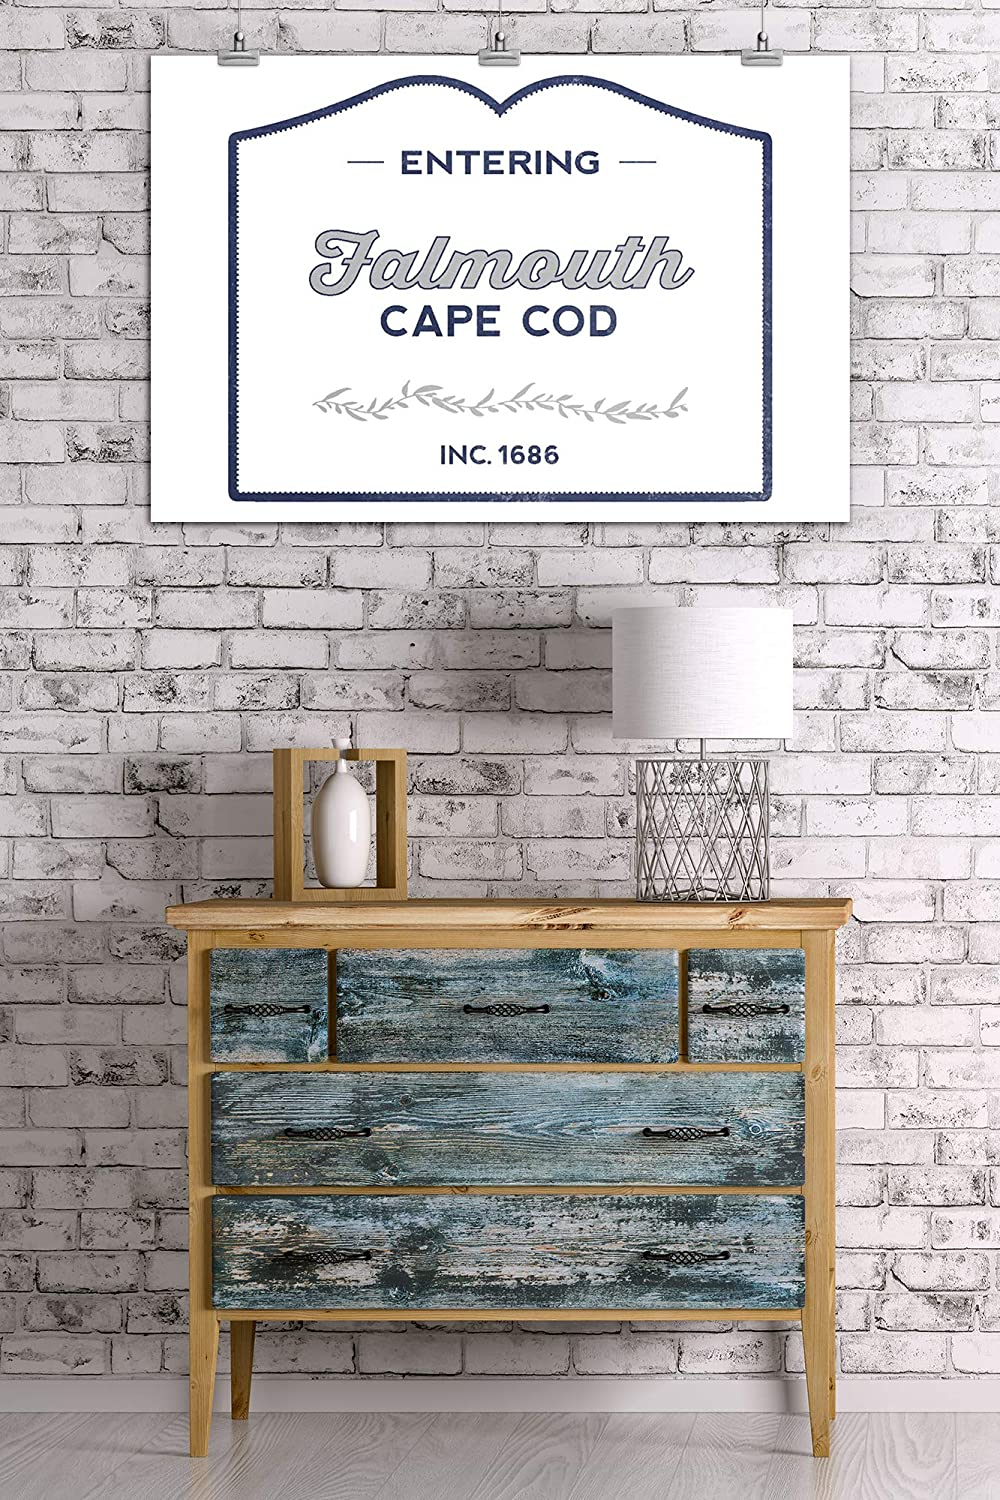 Cape Cod 24x36 SIGNED Print Master Art Print - Wall Decor Poster Falmouth Now Entering Massachusetts Blue 77527